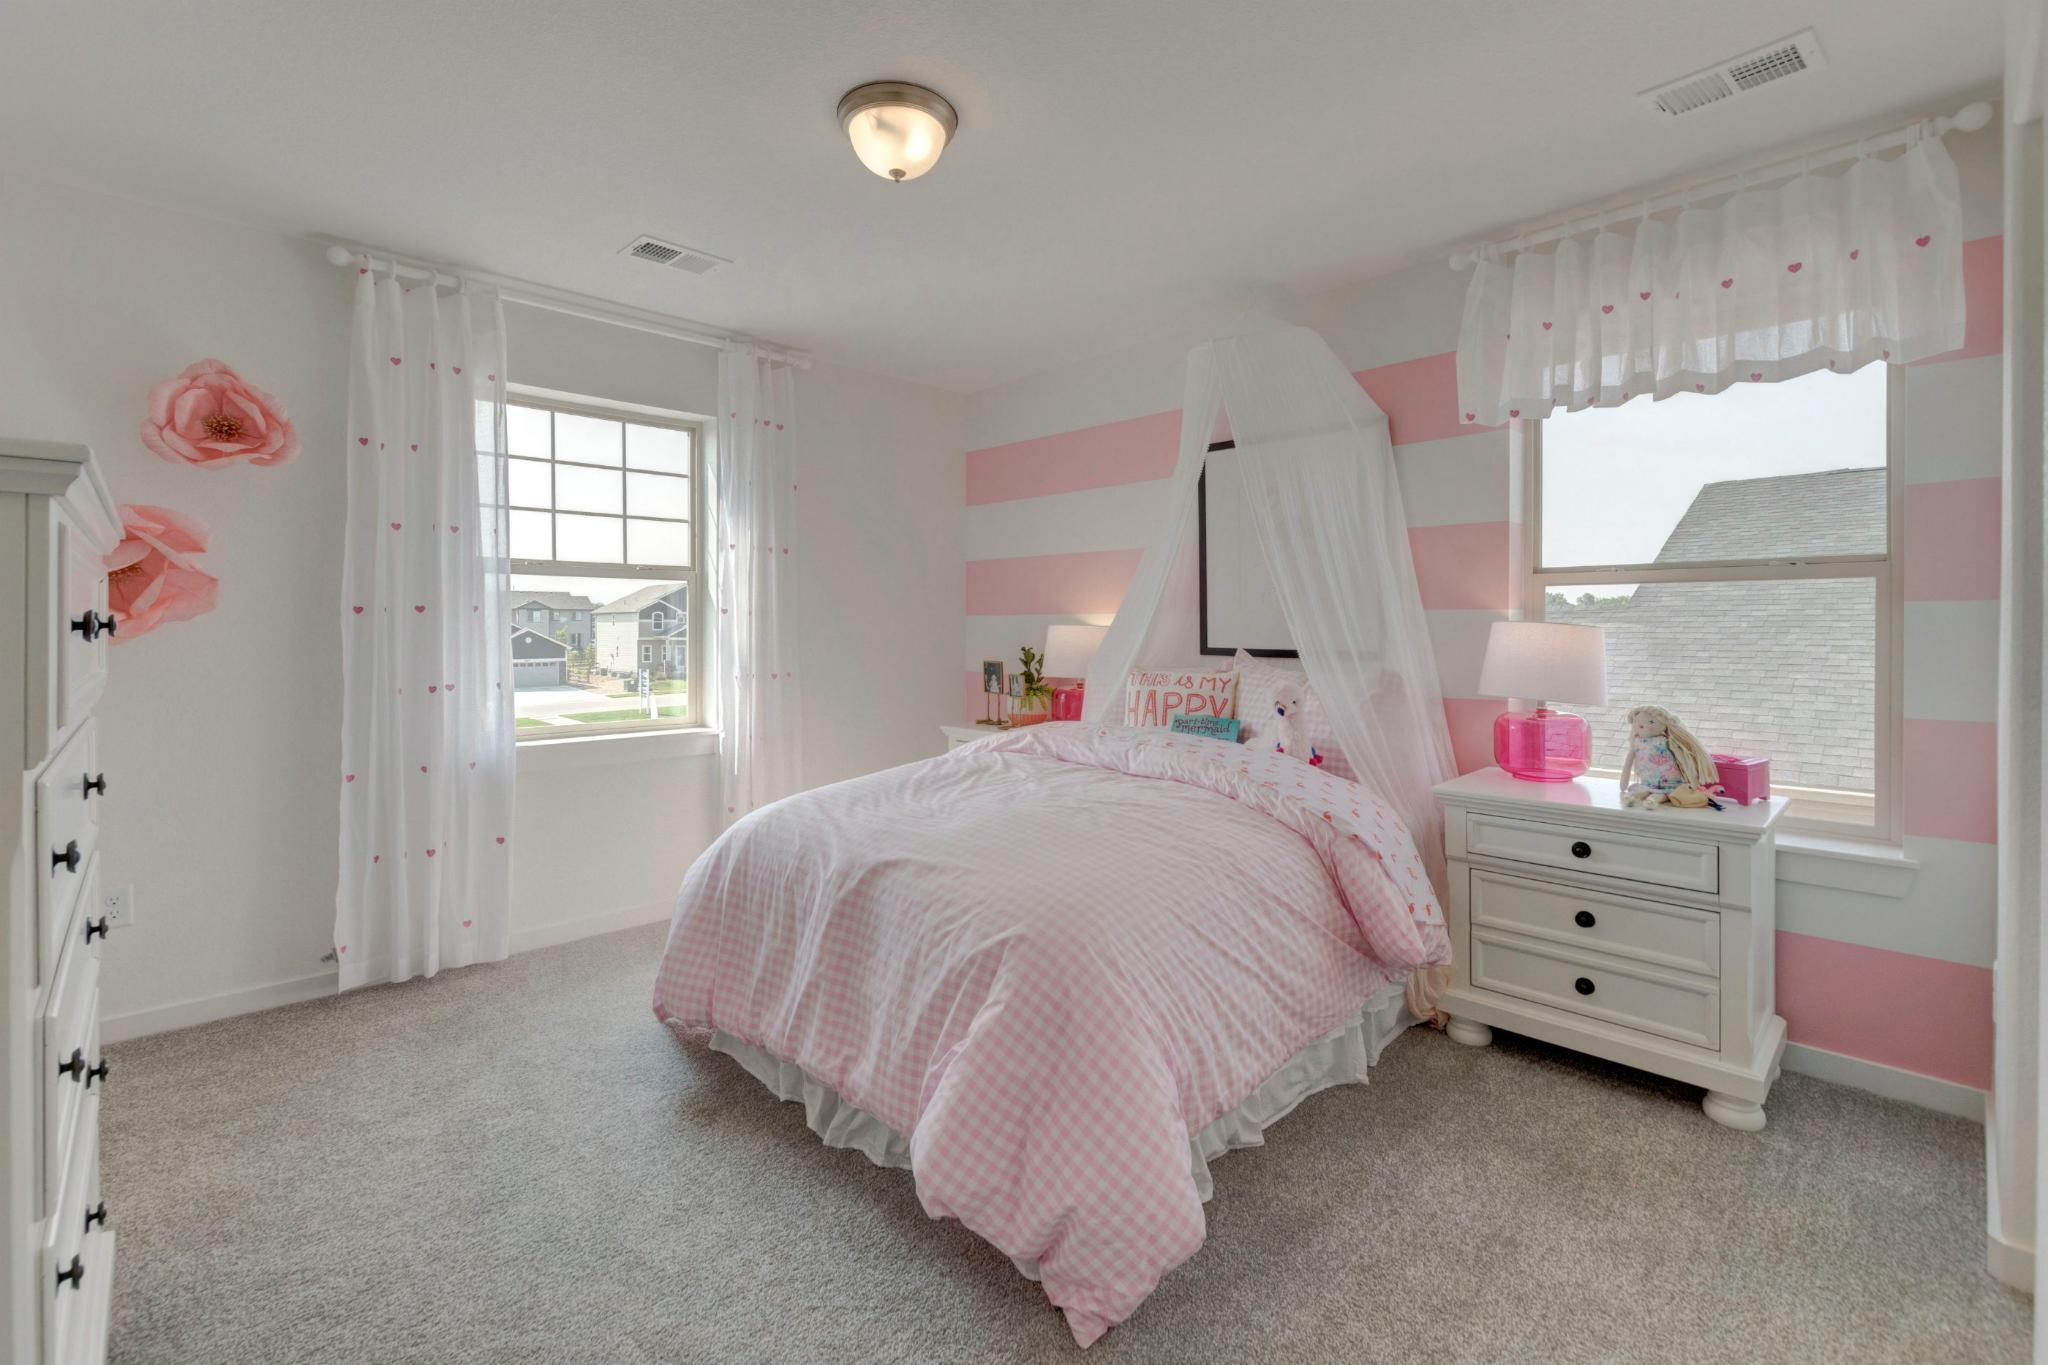 Bedroom featured in the Plan C505 By American Legend Homes in Greeley, CO